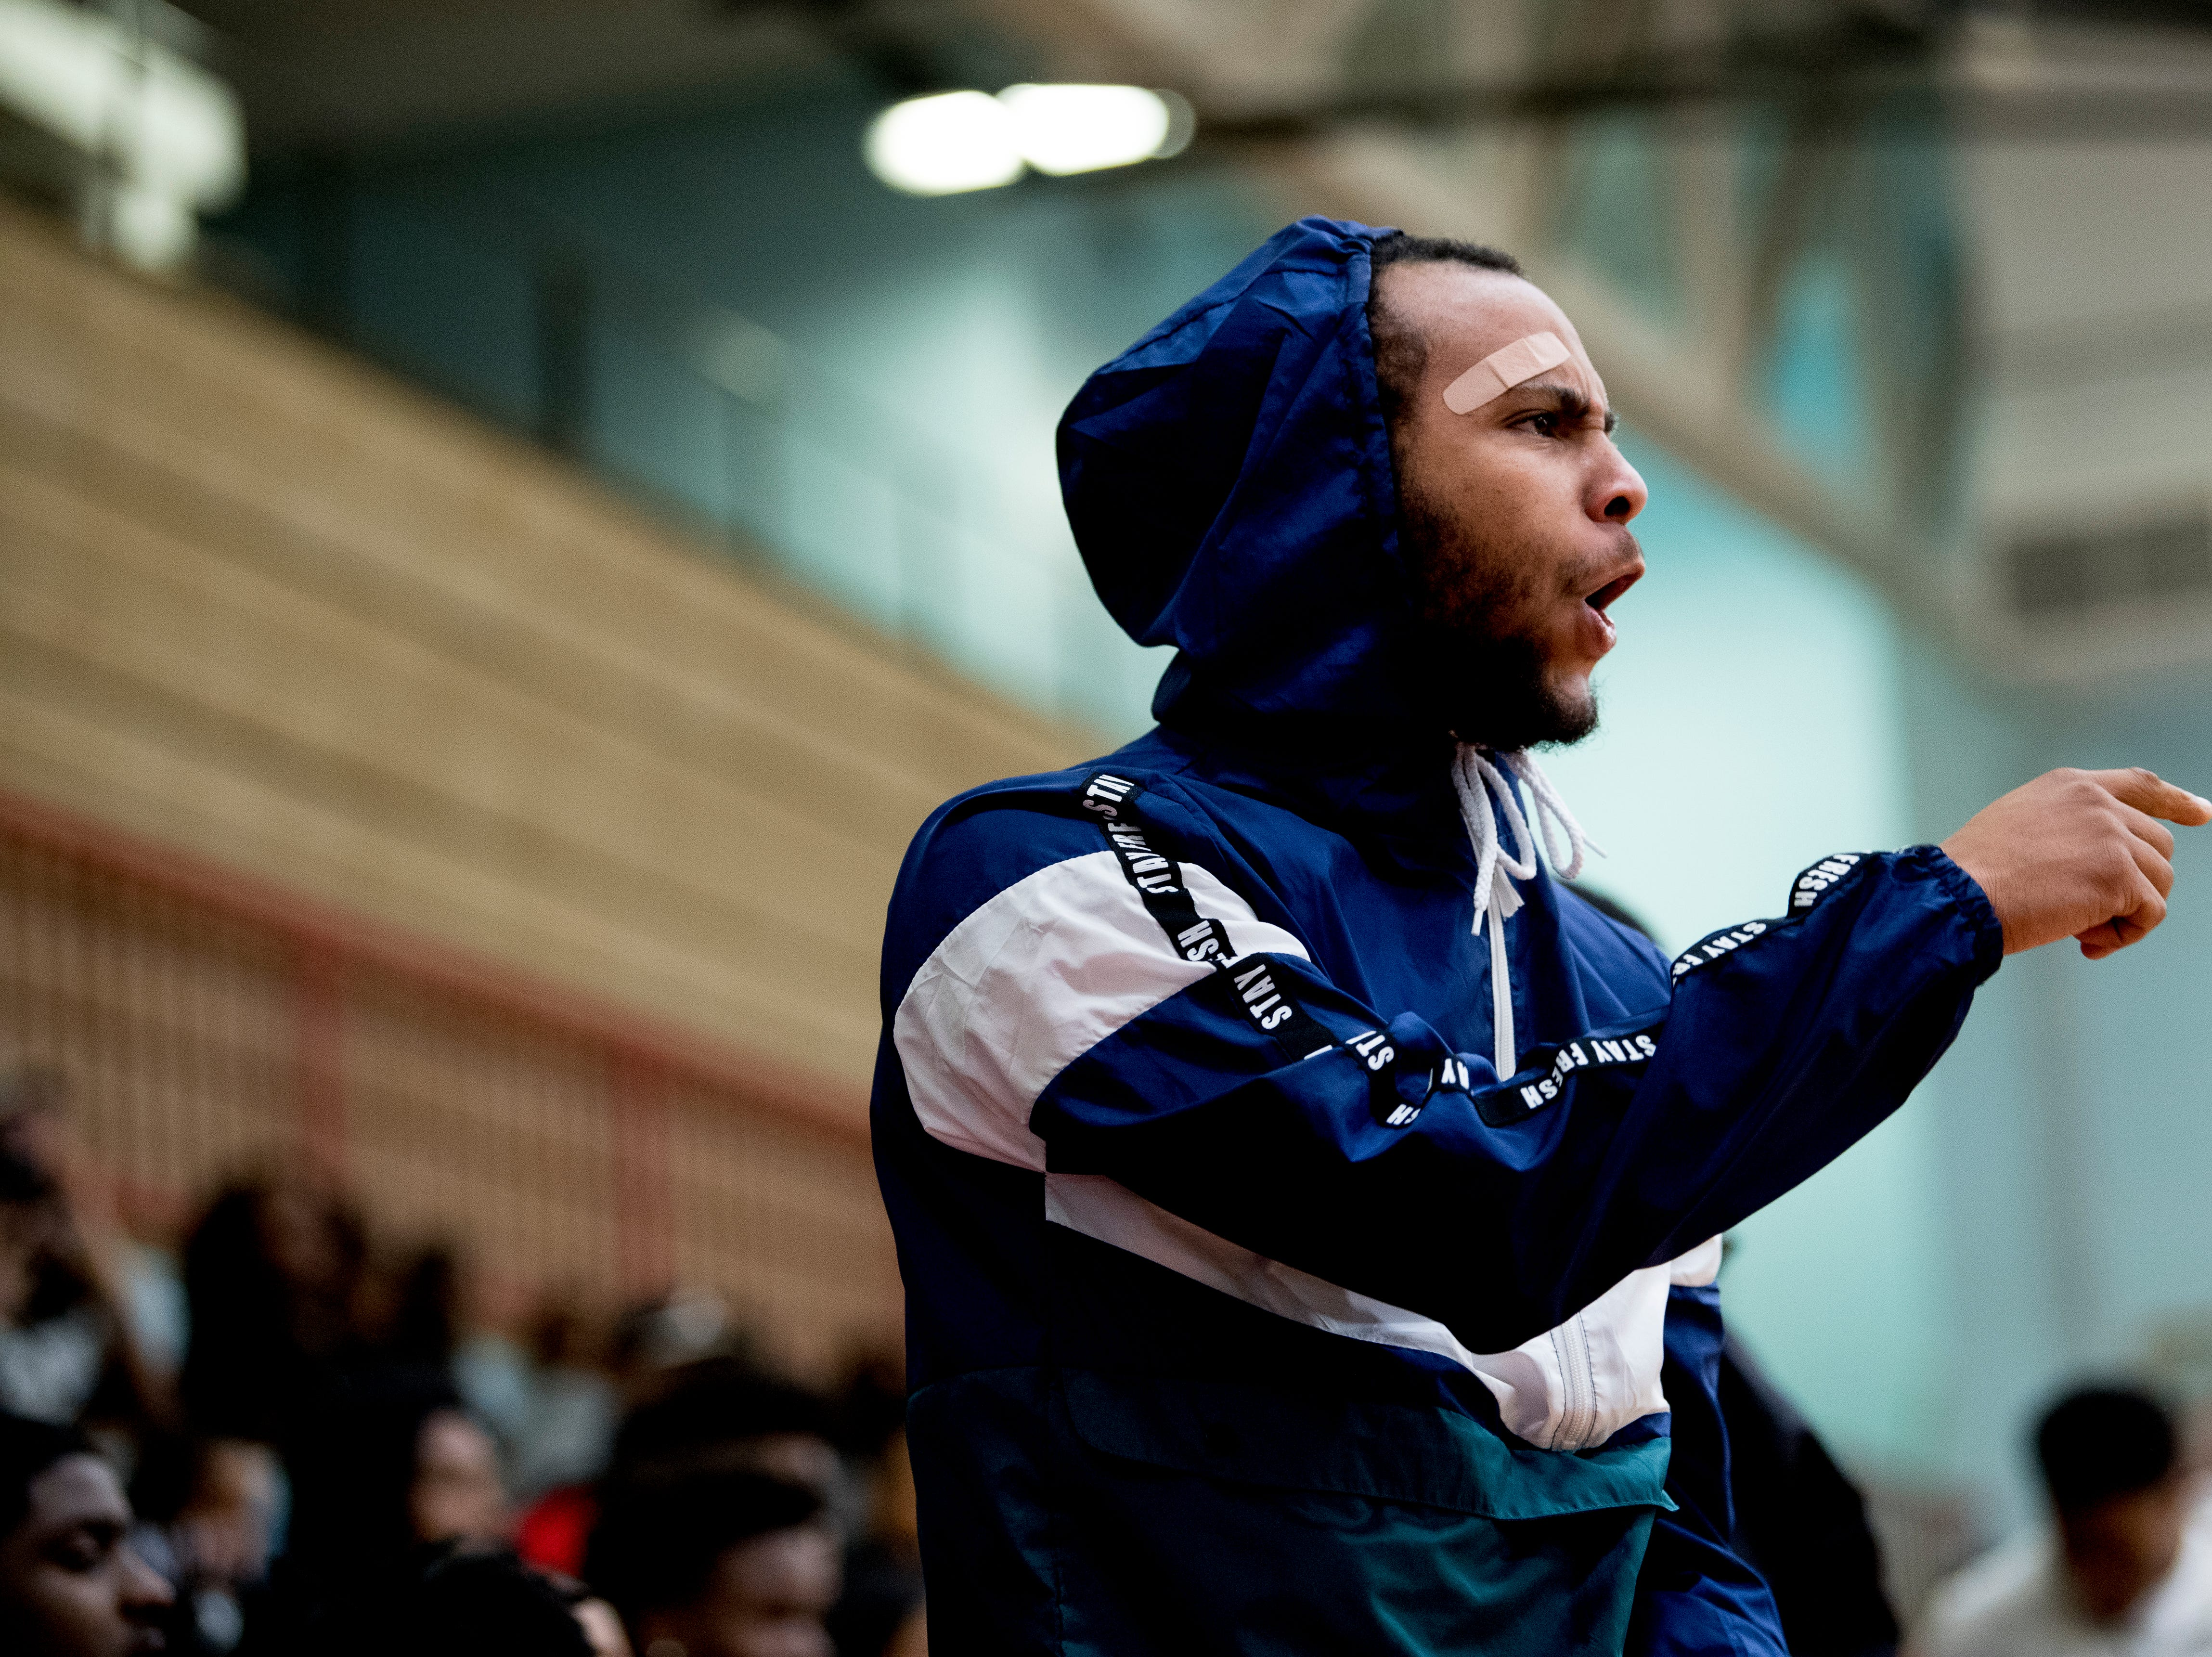 An Austin-East fan yells at the referee after a call during a game between Austin-East and Alcoa at Austin-East High School in Knoxville, Tennessee on Friday, January 18, 2019.